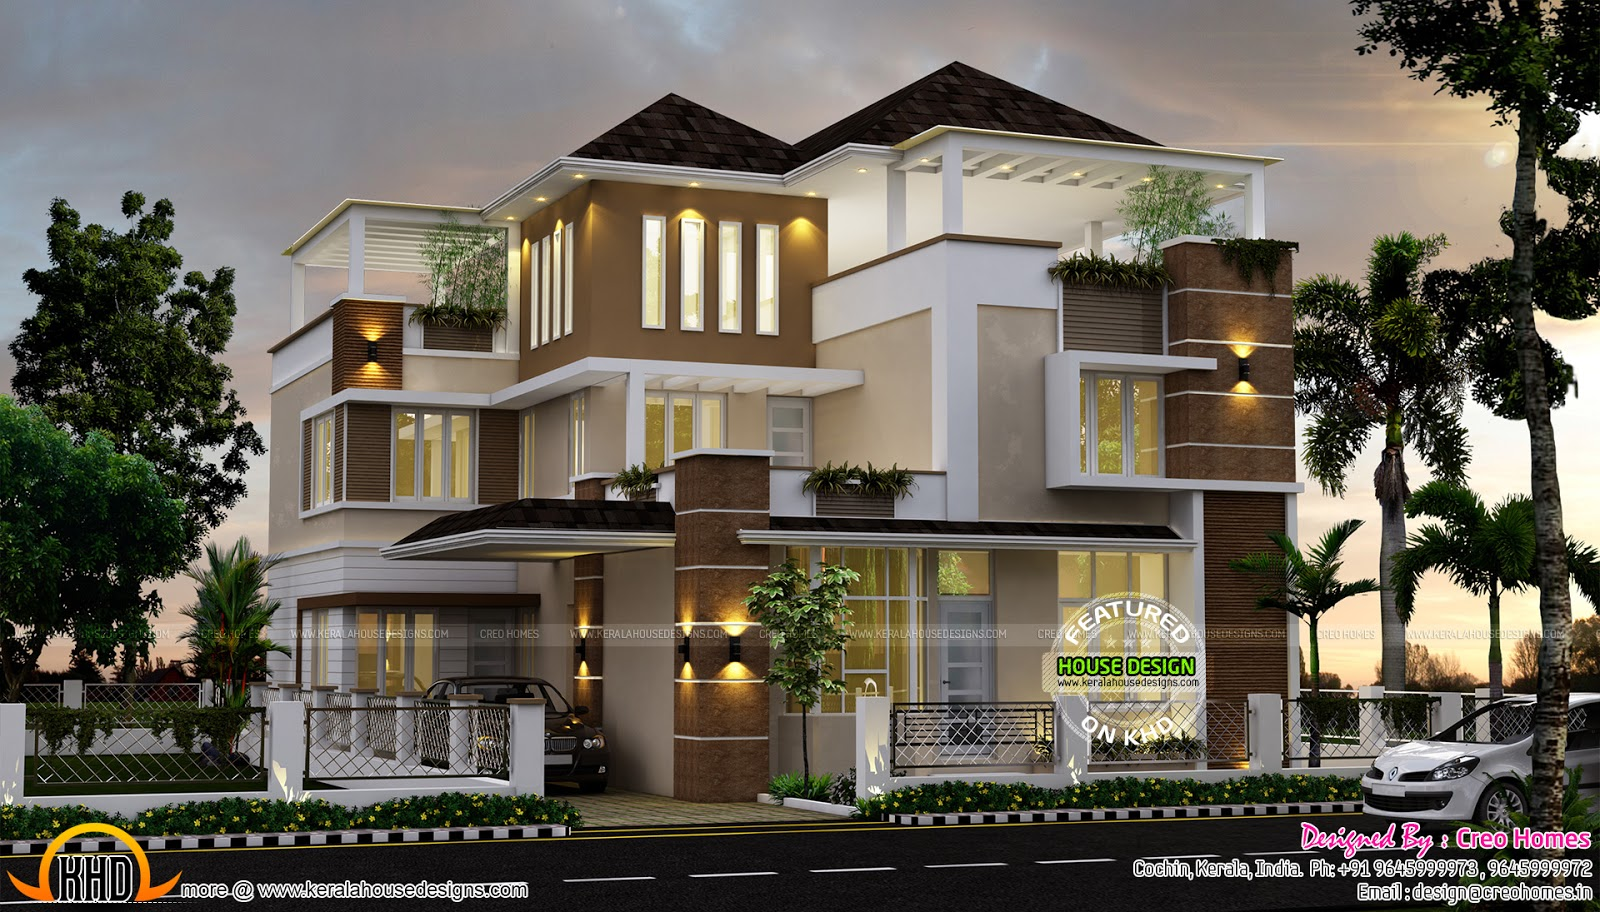 Ultra modern luxury habitation inwards Kerala  keralahousedesigns